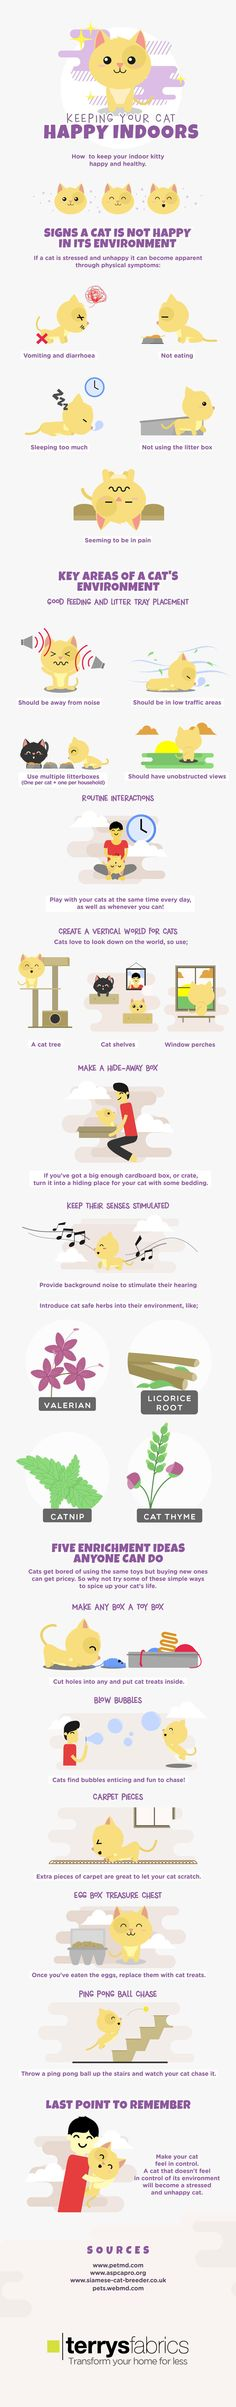 Not everyone gets a chance to let their cats out on a regular basis. If you are planning to keep your cats inside all the time, you need to make sure they are well taken care of. This infographic from Terry Fabrics covers how you can keep indoor cats happy: